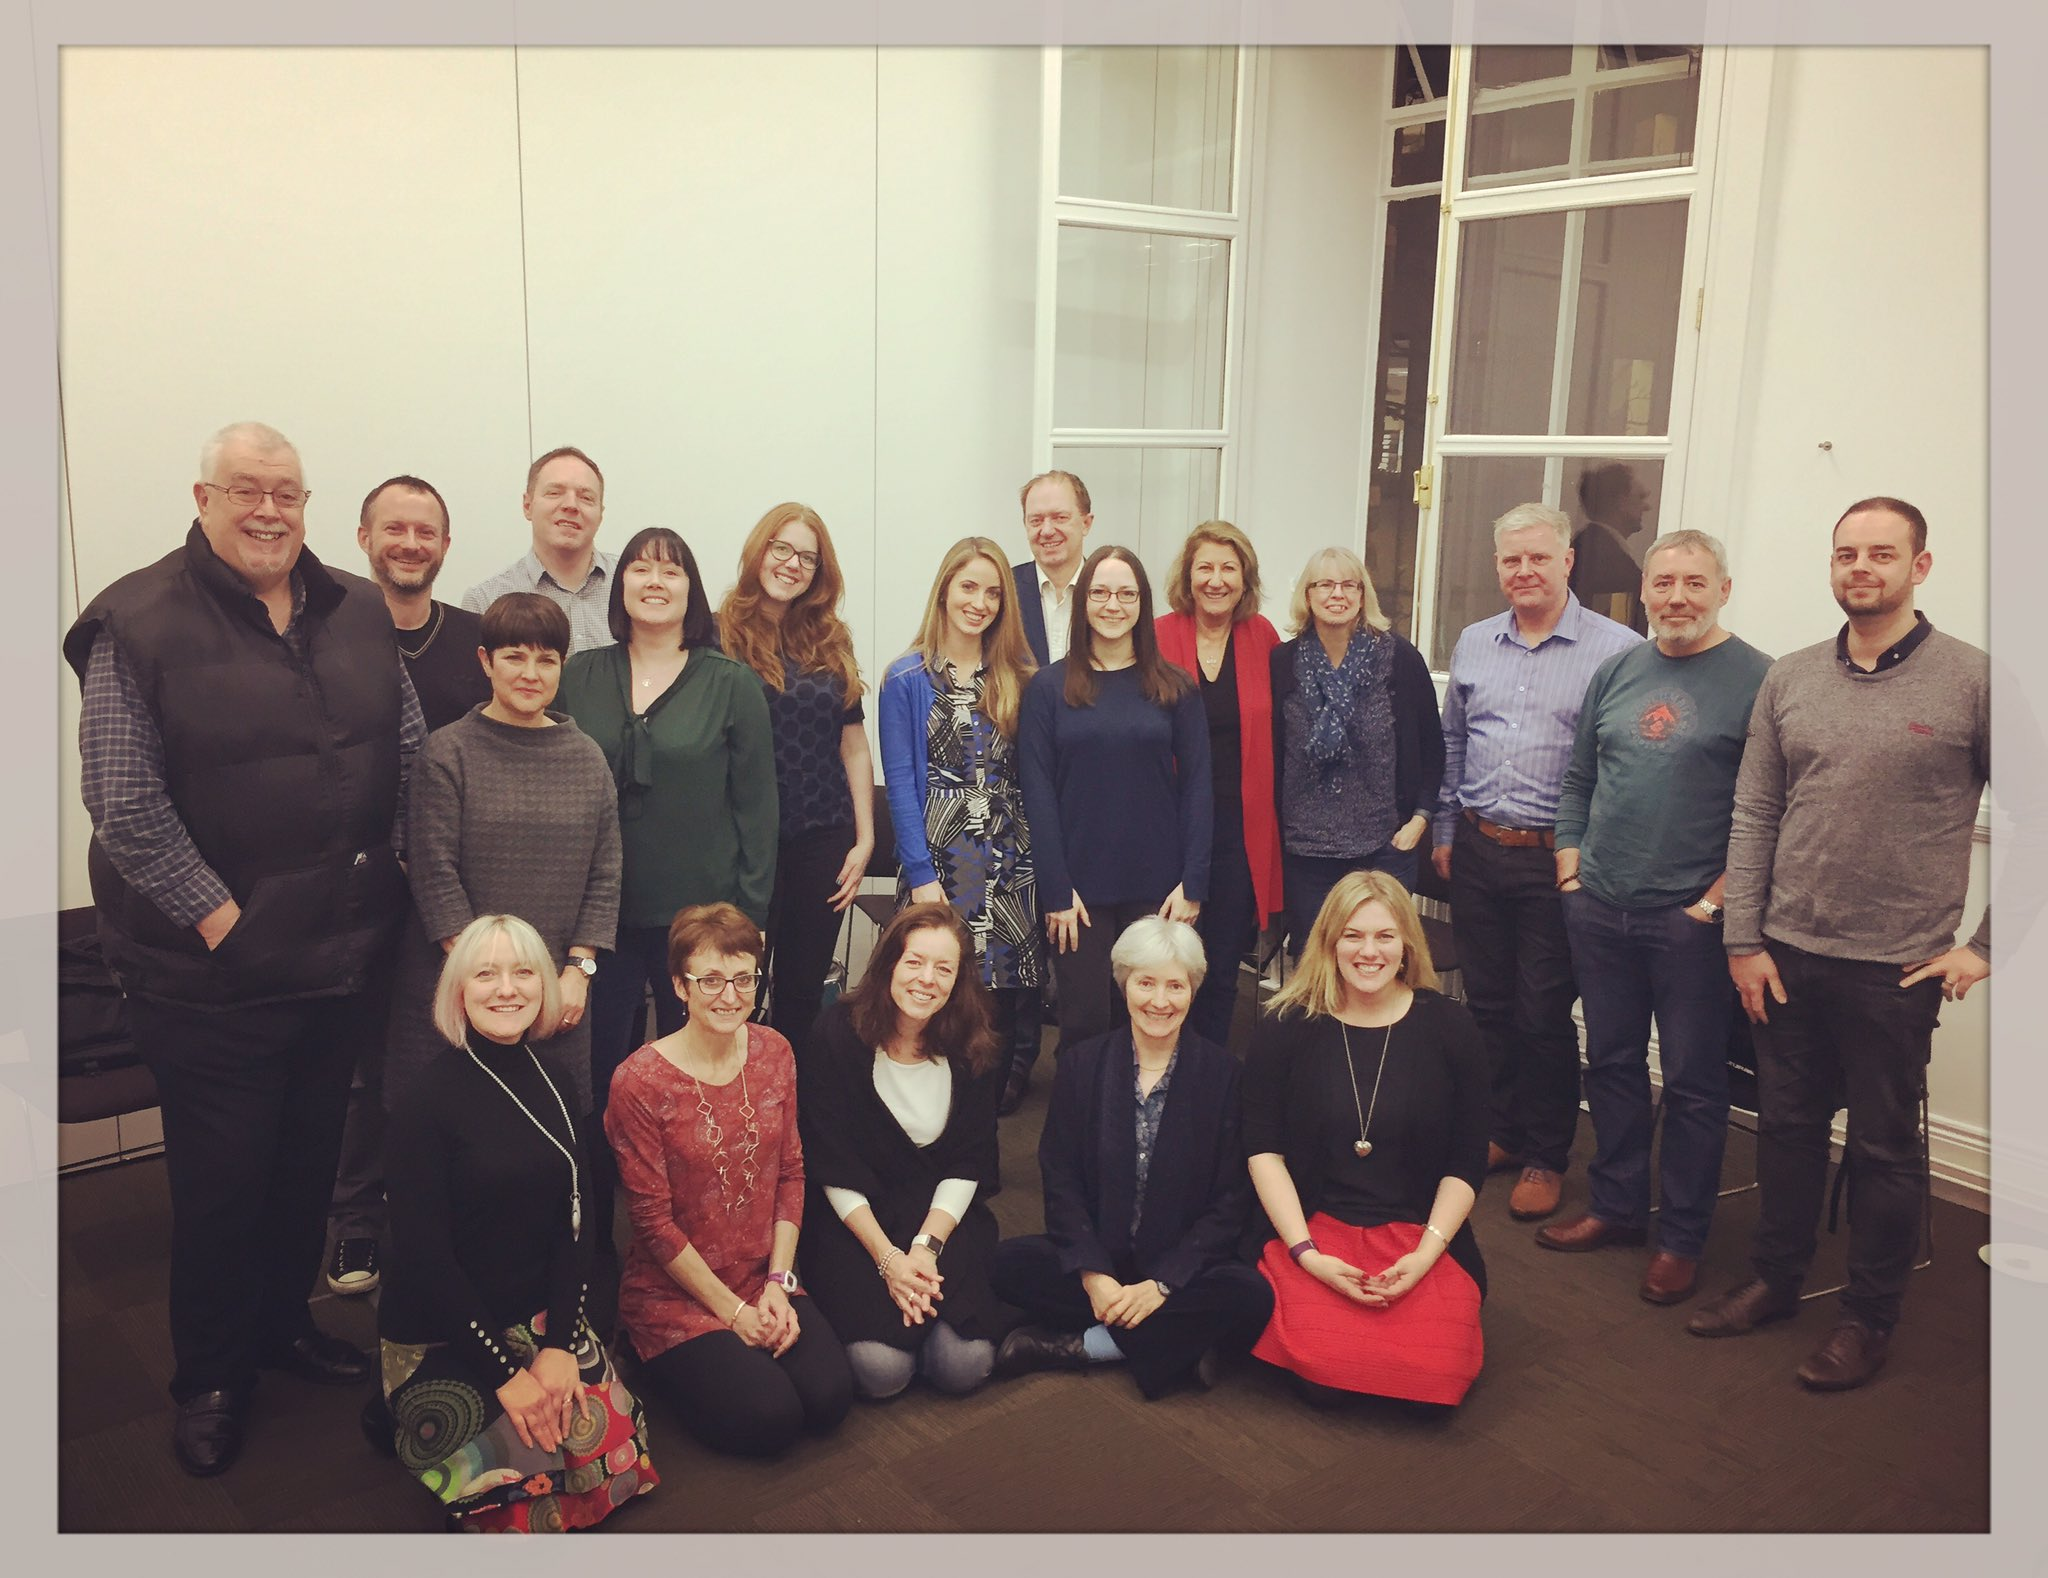 Image: The Facilitation Shindig participants (Image from Julie Drybrough)